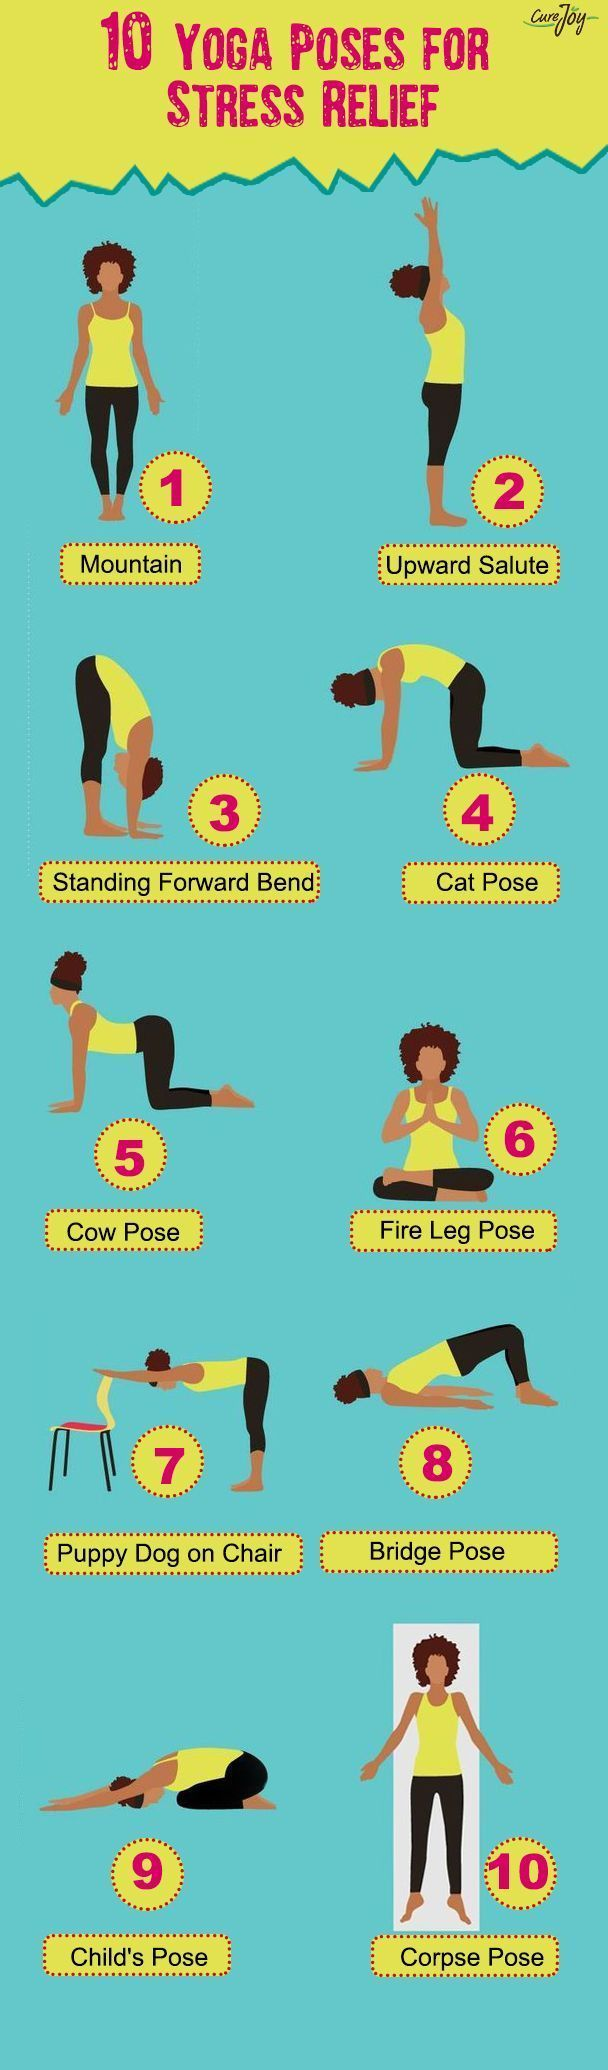 5 Easy Yoga Poses for Stress Relief #anxietyhustle Having to deal with our everyday life challenges whether as an employer of labour, a factory worker, or a business owner is a huge source of concern for us city people. The hustle and bustle of life sure drains energy as fast as, if not faster than our body can replace them. This leads to stress – and most times, anxiety. The eventual fallout is reduced productivity, tiredness, and illness. #anxietyhustle 5 Easy Yoga Poses for Stress Relief #a #anxietyhustle